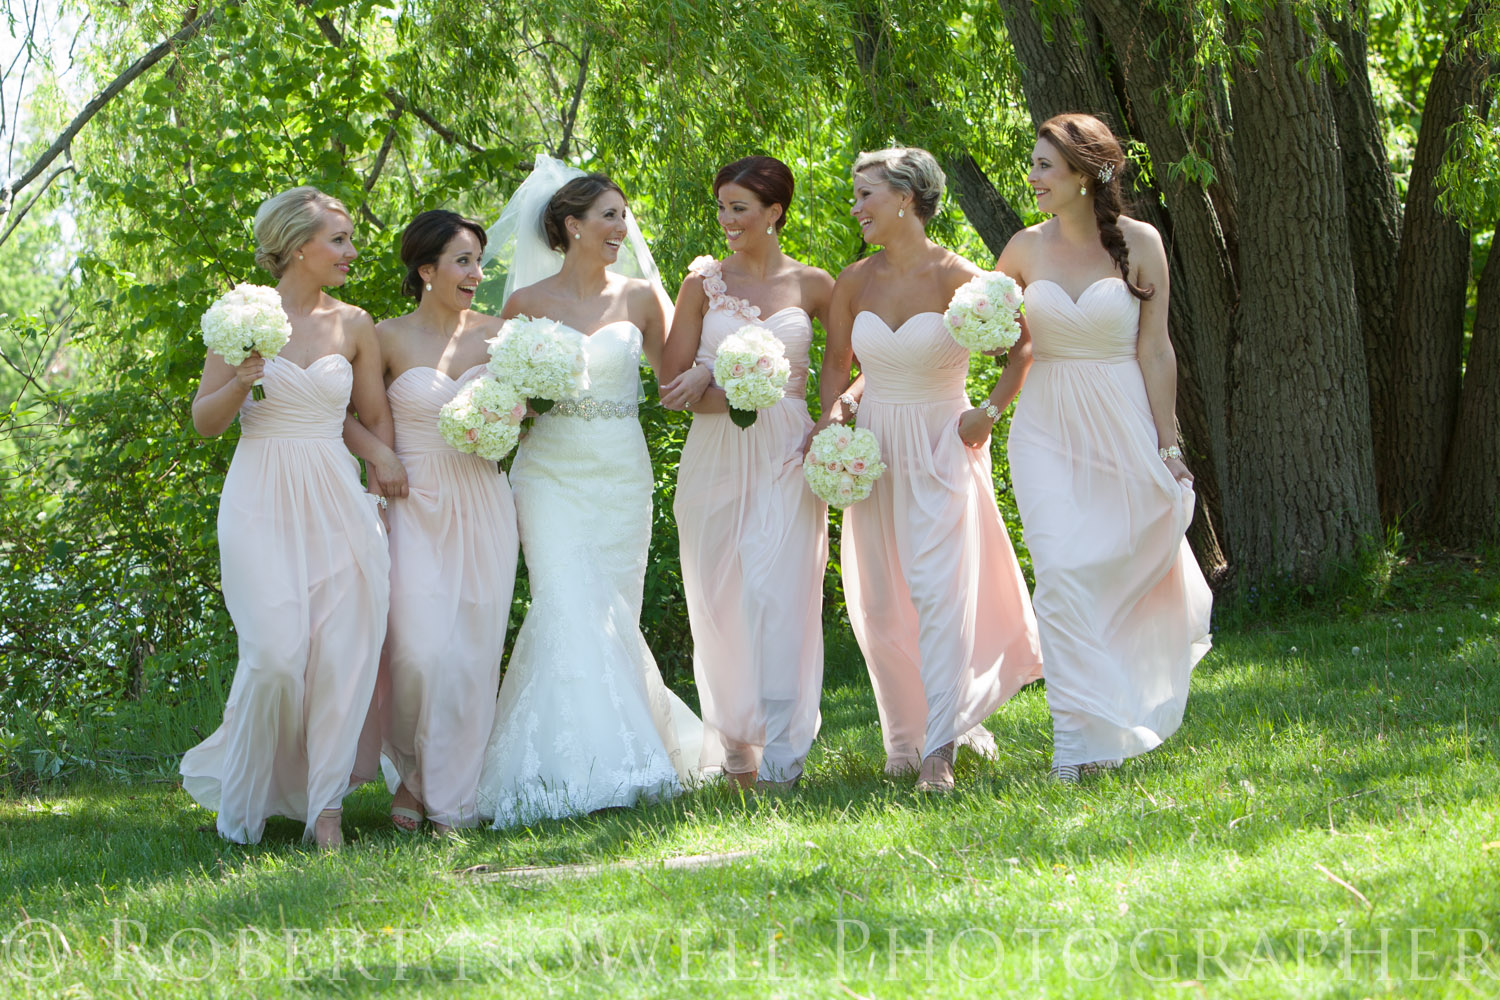 Bride and bridesmaids, Niagara wedding photography